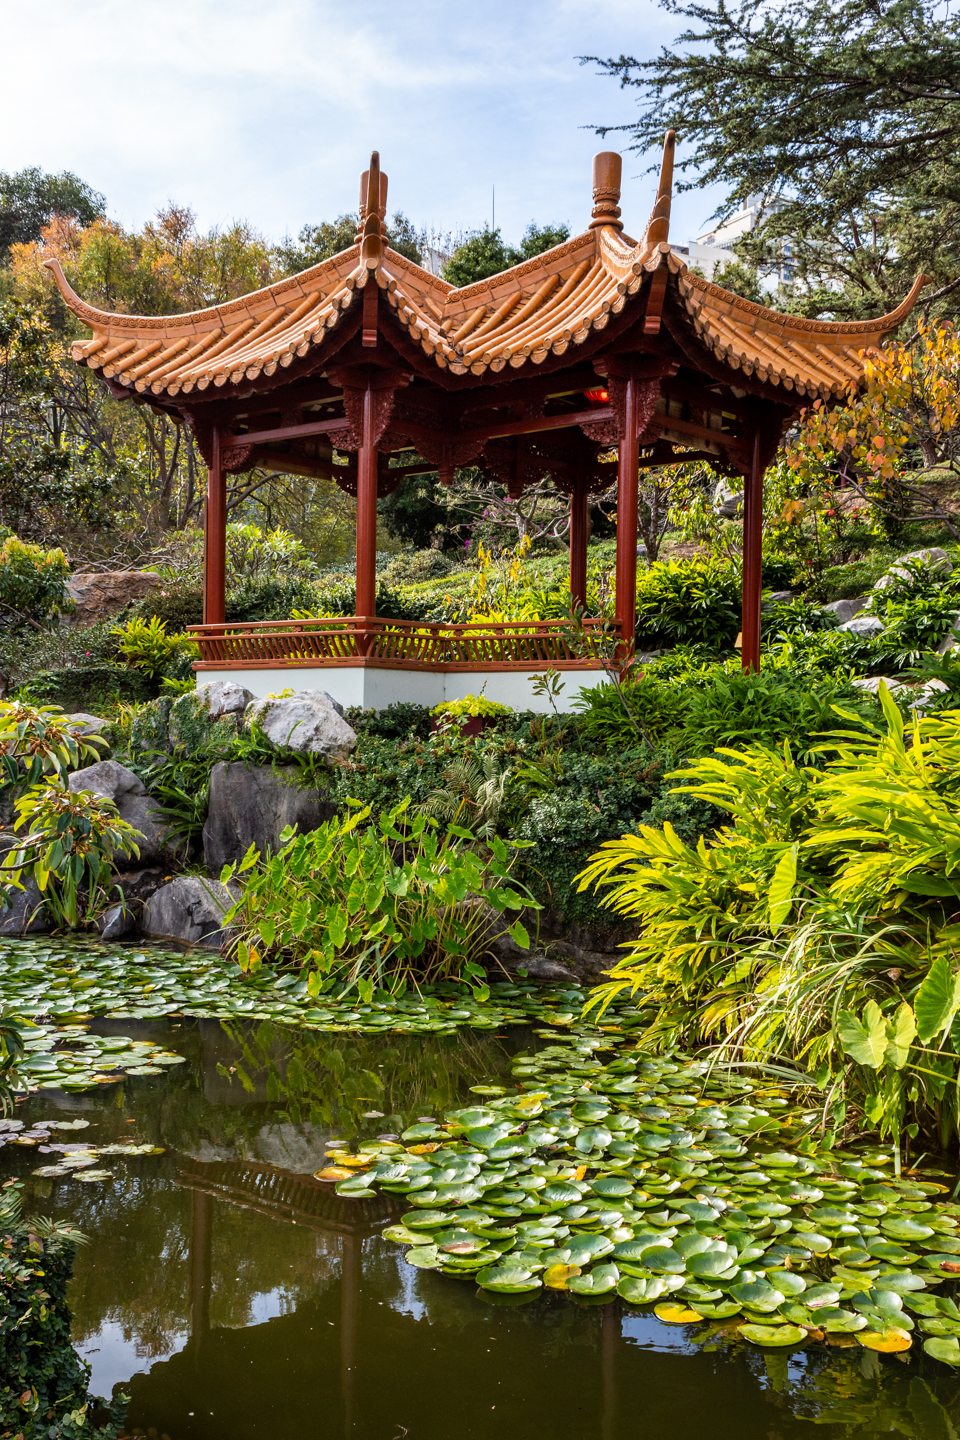 CRH_2018_CHINESE_GARDEN_OF_FRIENDSHIP_3094.jpg